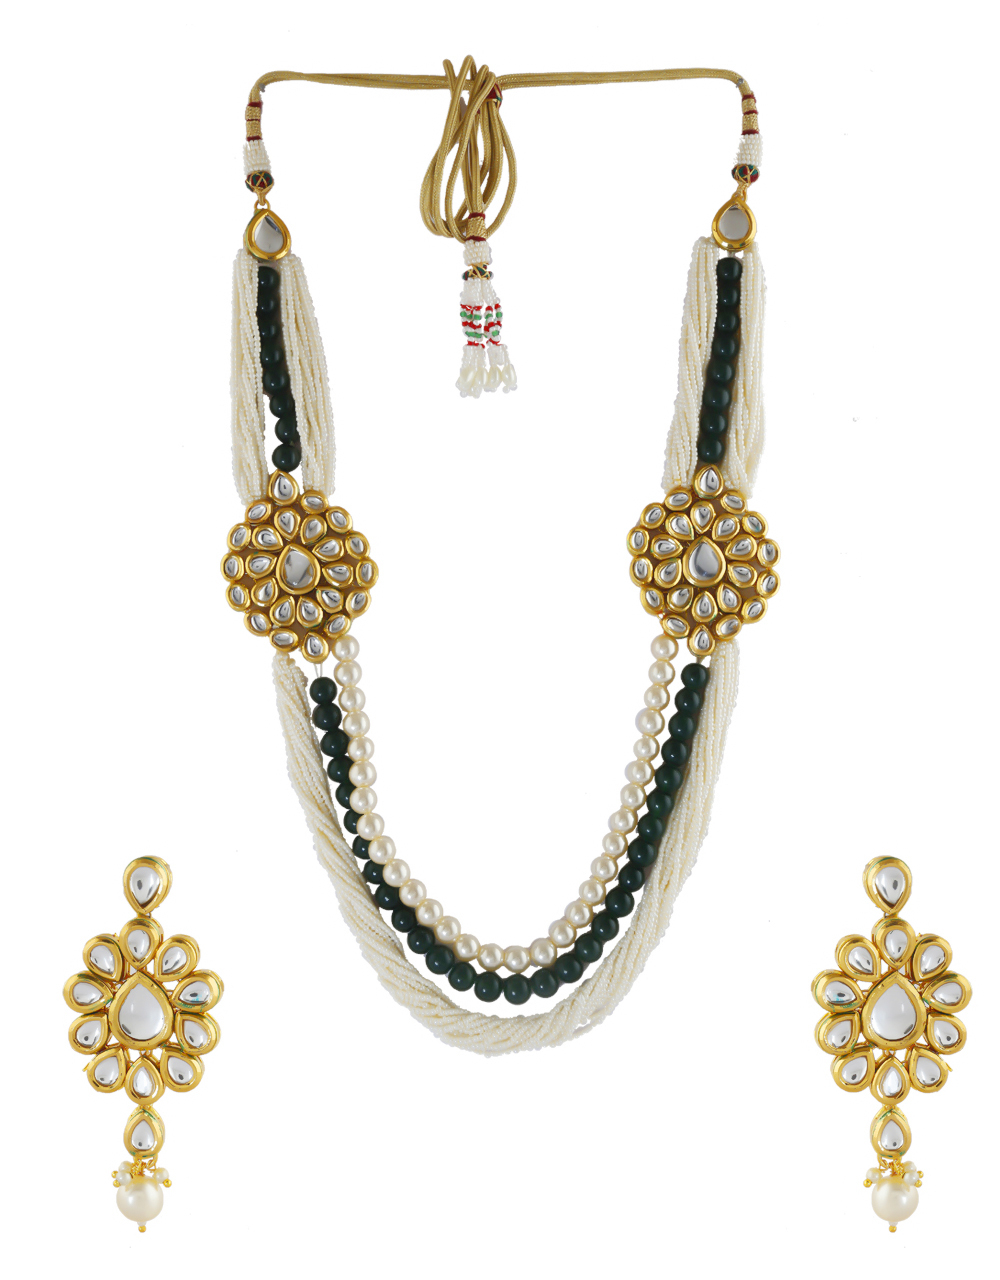 Green Colour Gold Finish Styled With Beads Kundan Necklace